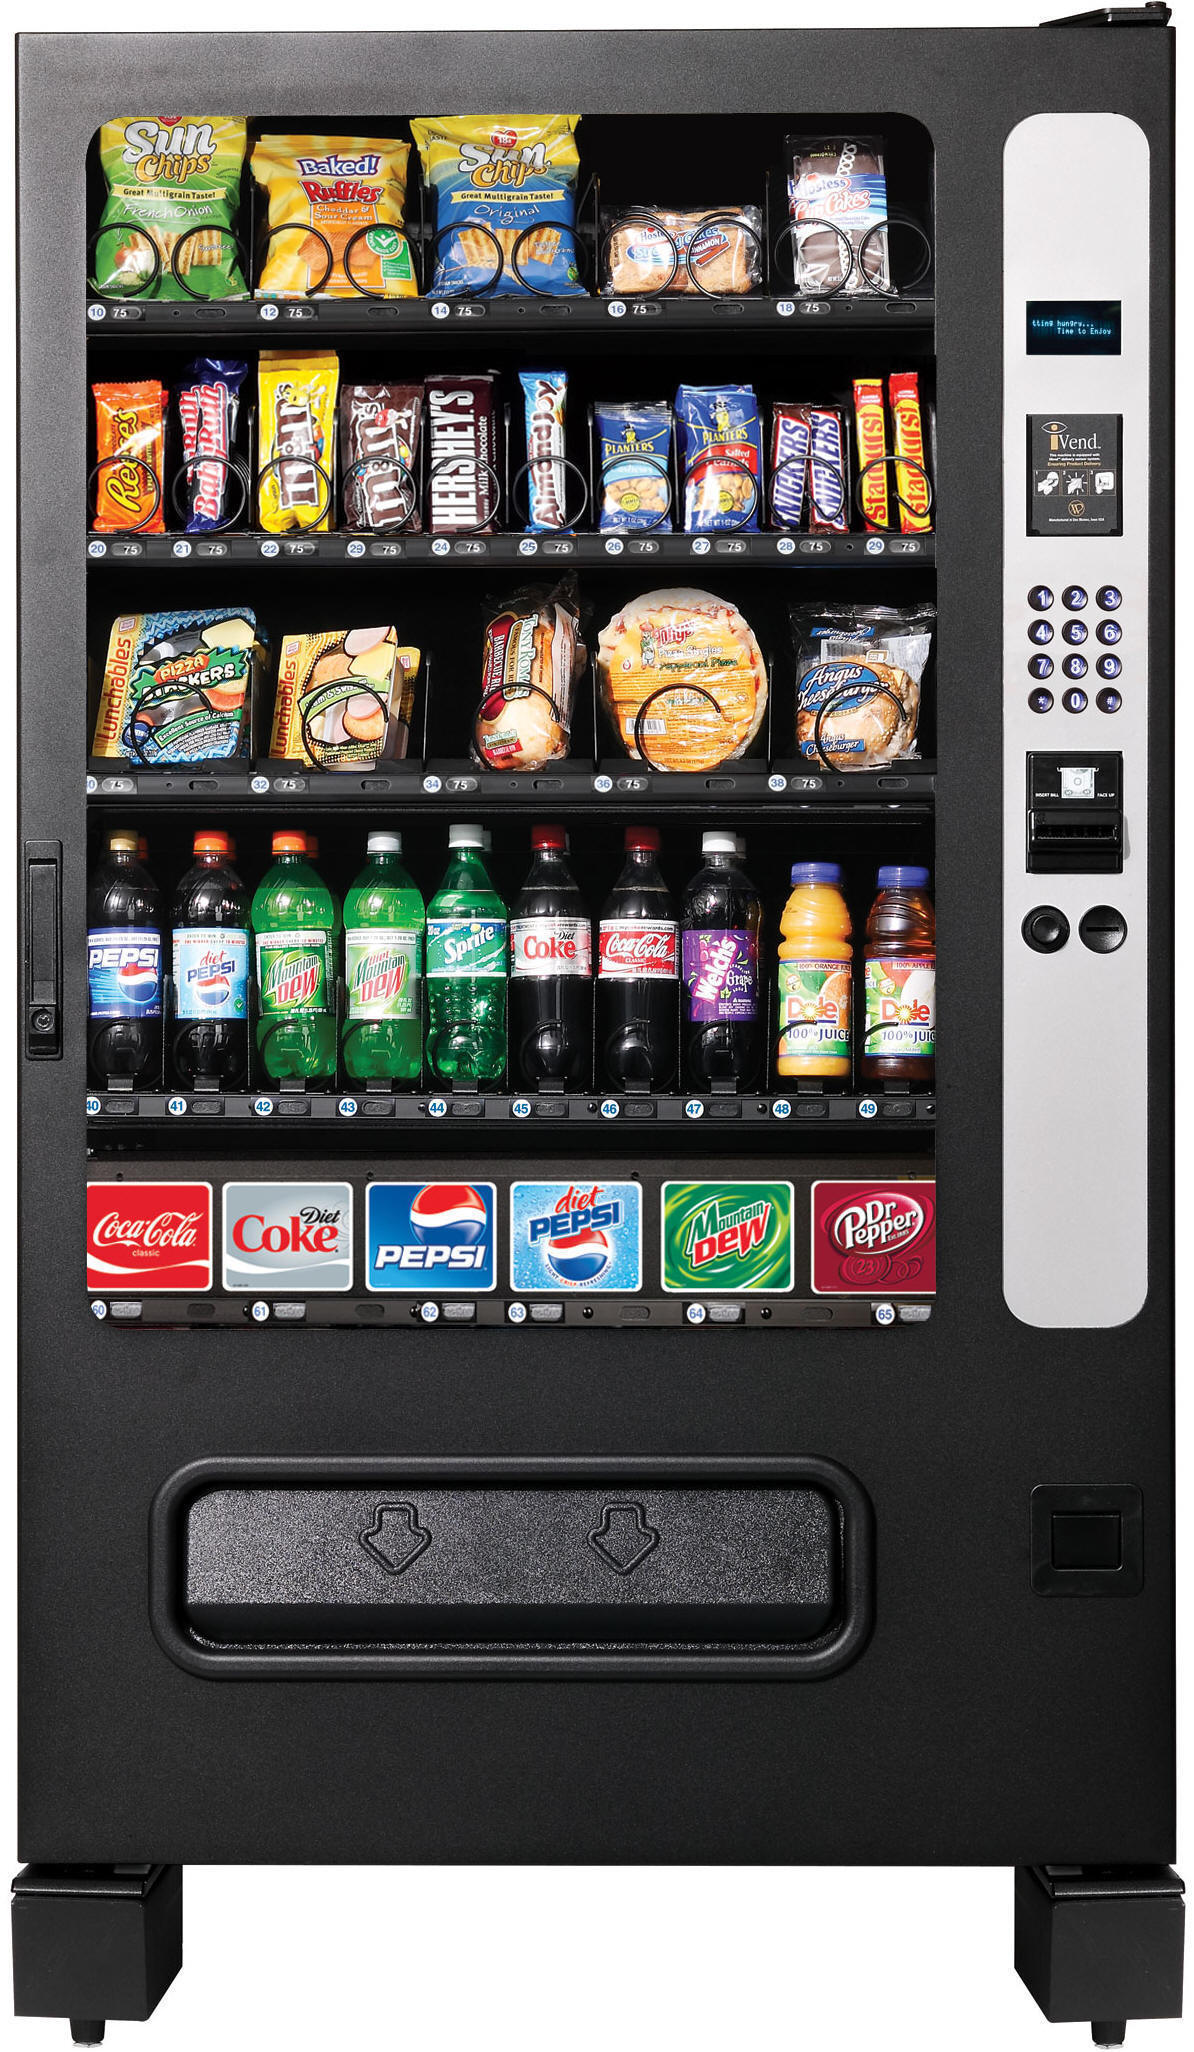 vending machines in schools and obesity